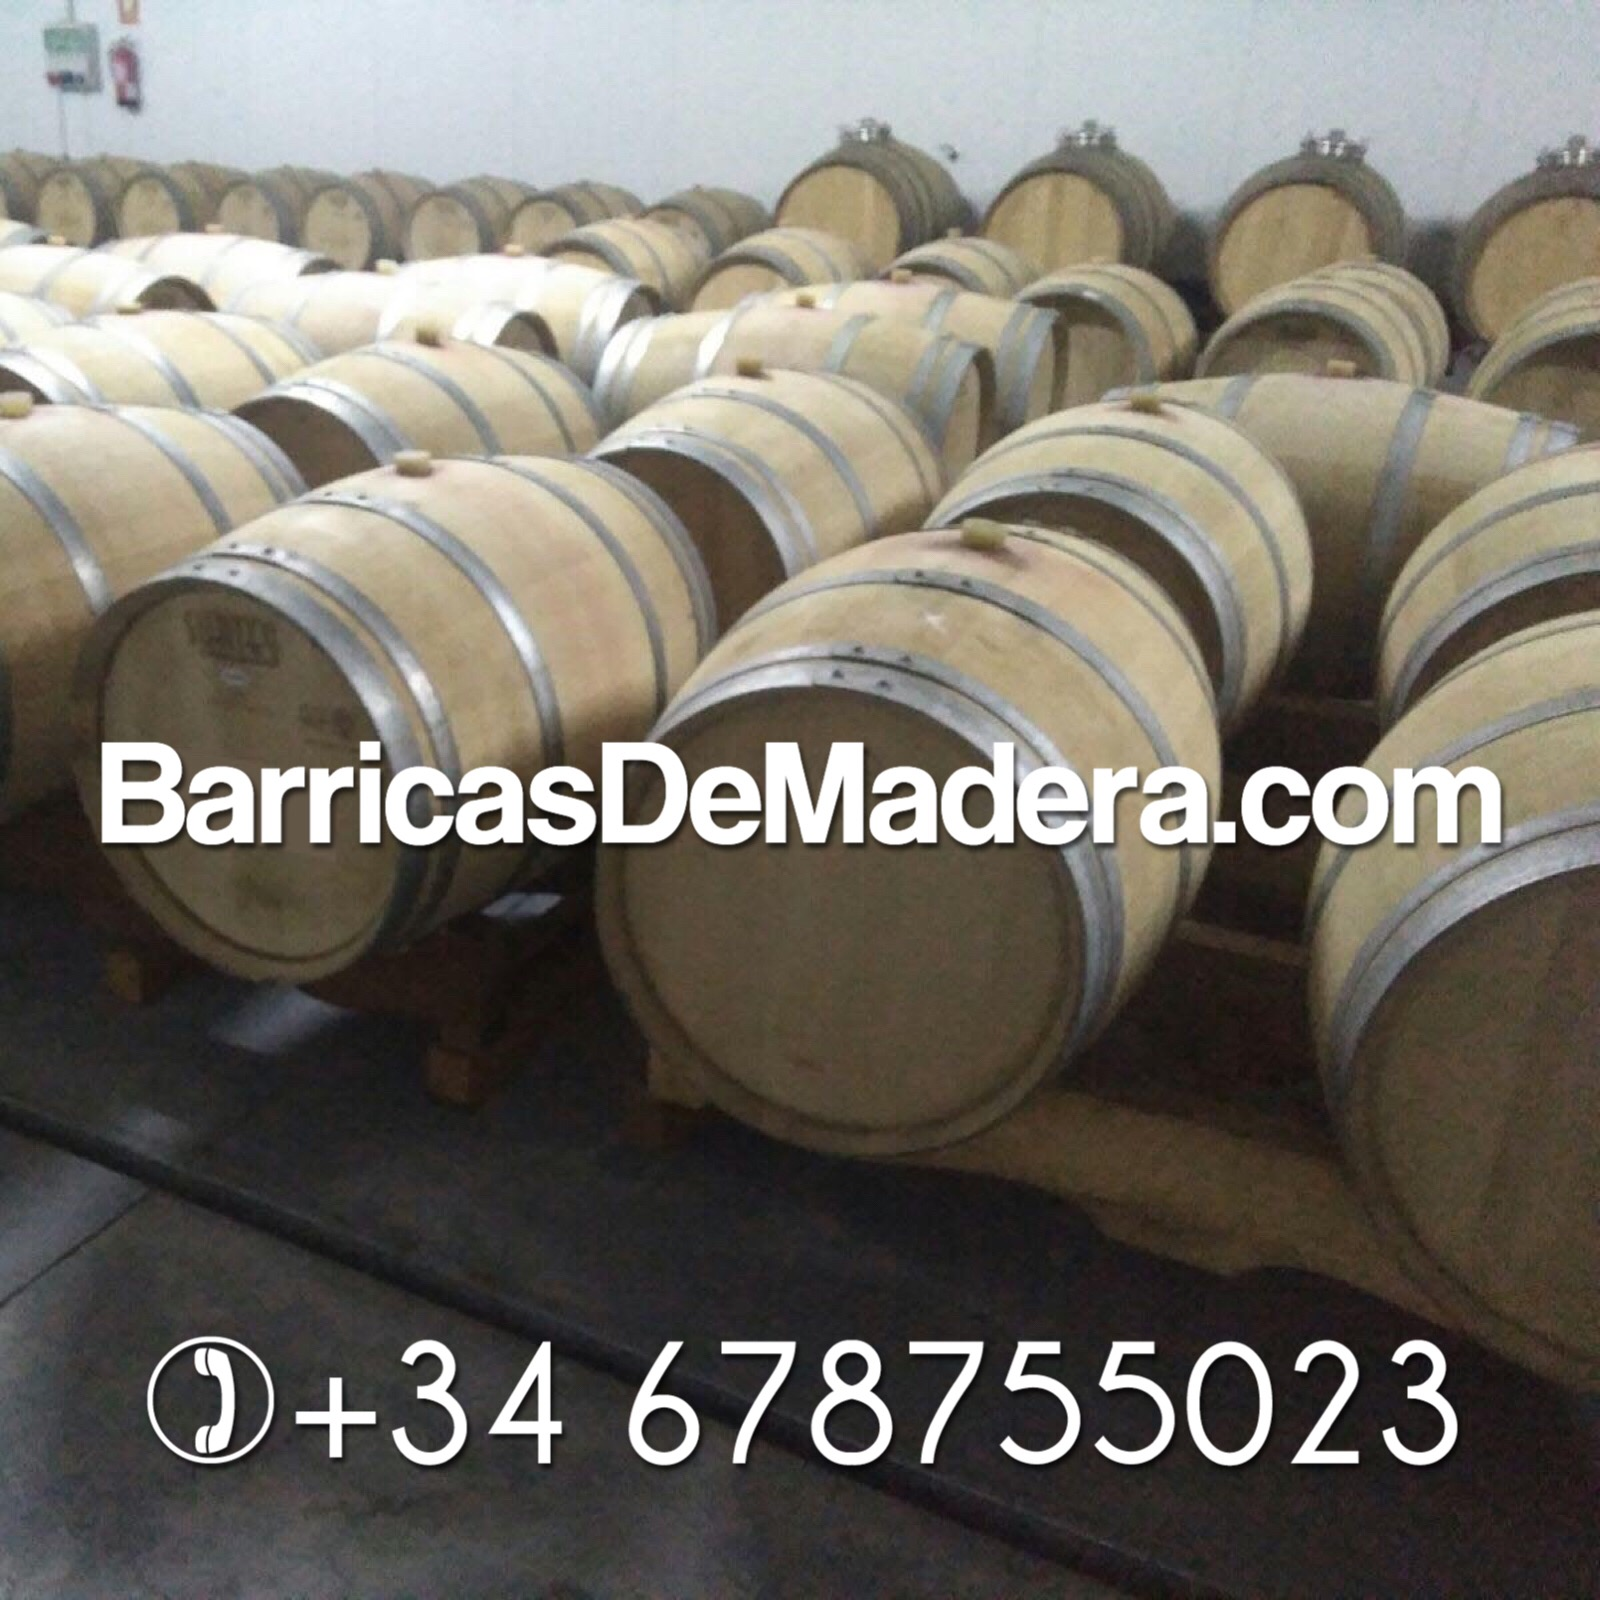 used-wine.barrels-winery-cellar-spain